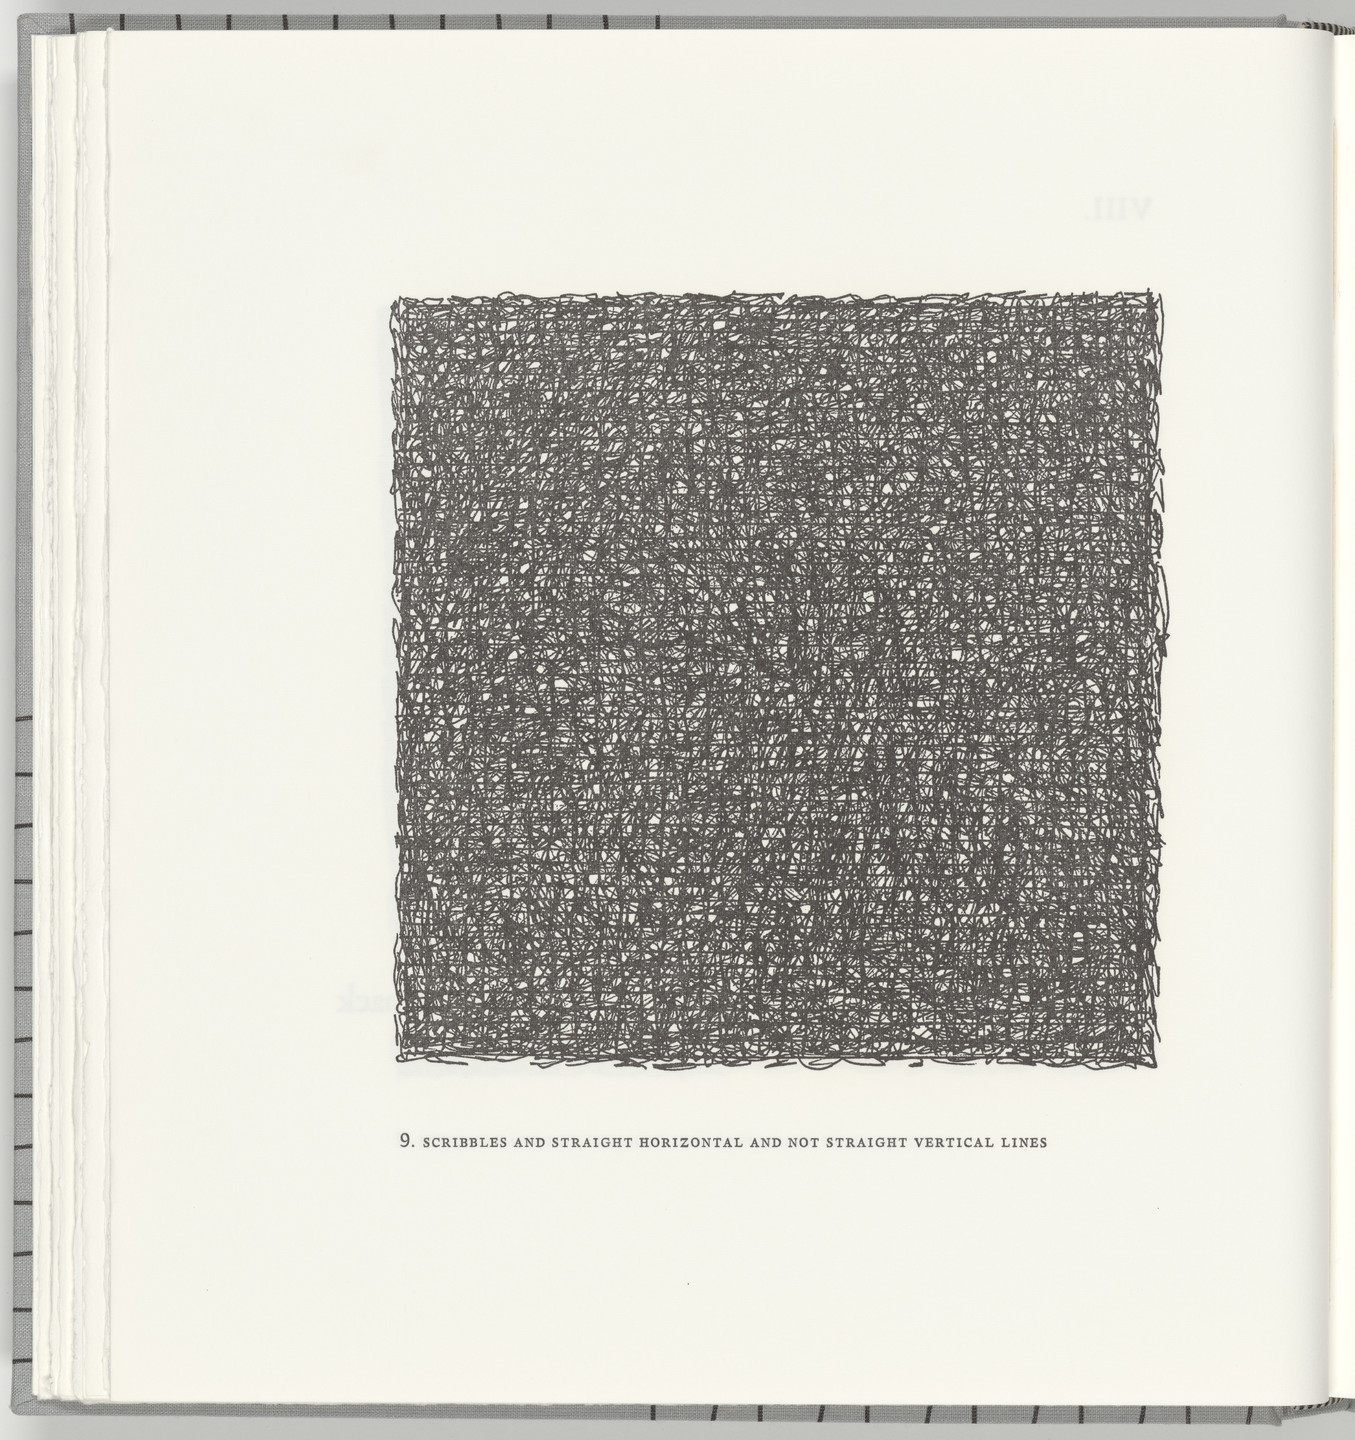 Sol LeWitt. Scribbles and Straight Horizontal and Not Straight Vertical Lines (plate 9) from Squarings. 2003